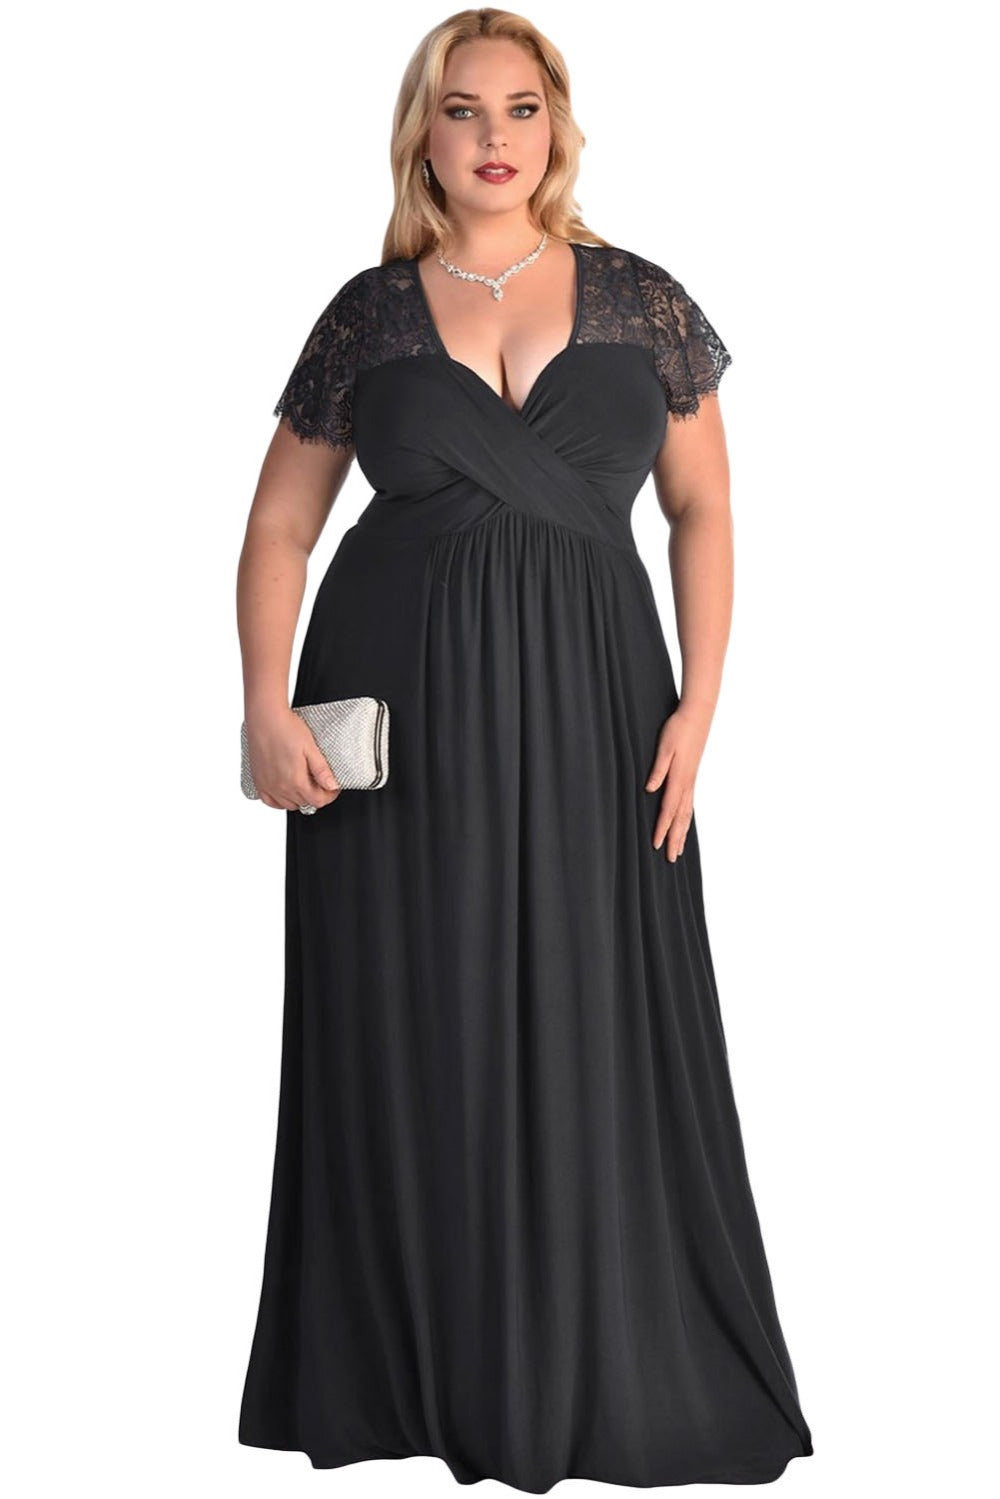 Plunge Lace Maxi Dress - Plus Size Gown Dress